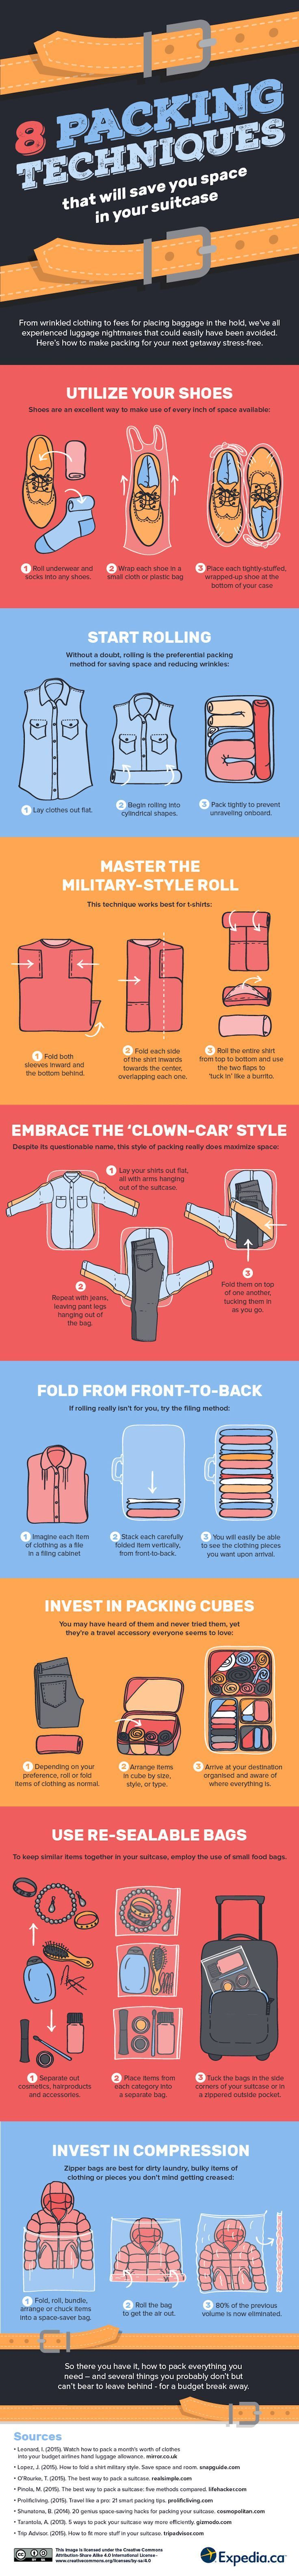 Packing Tips by expedia via lifeahacker #PAcking_Tips: